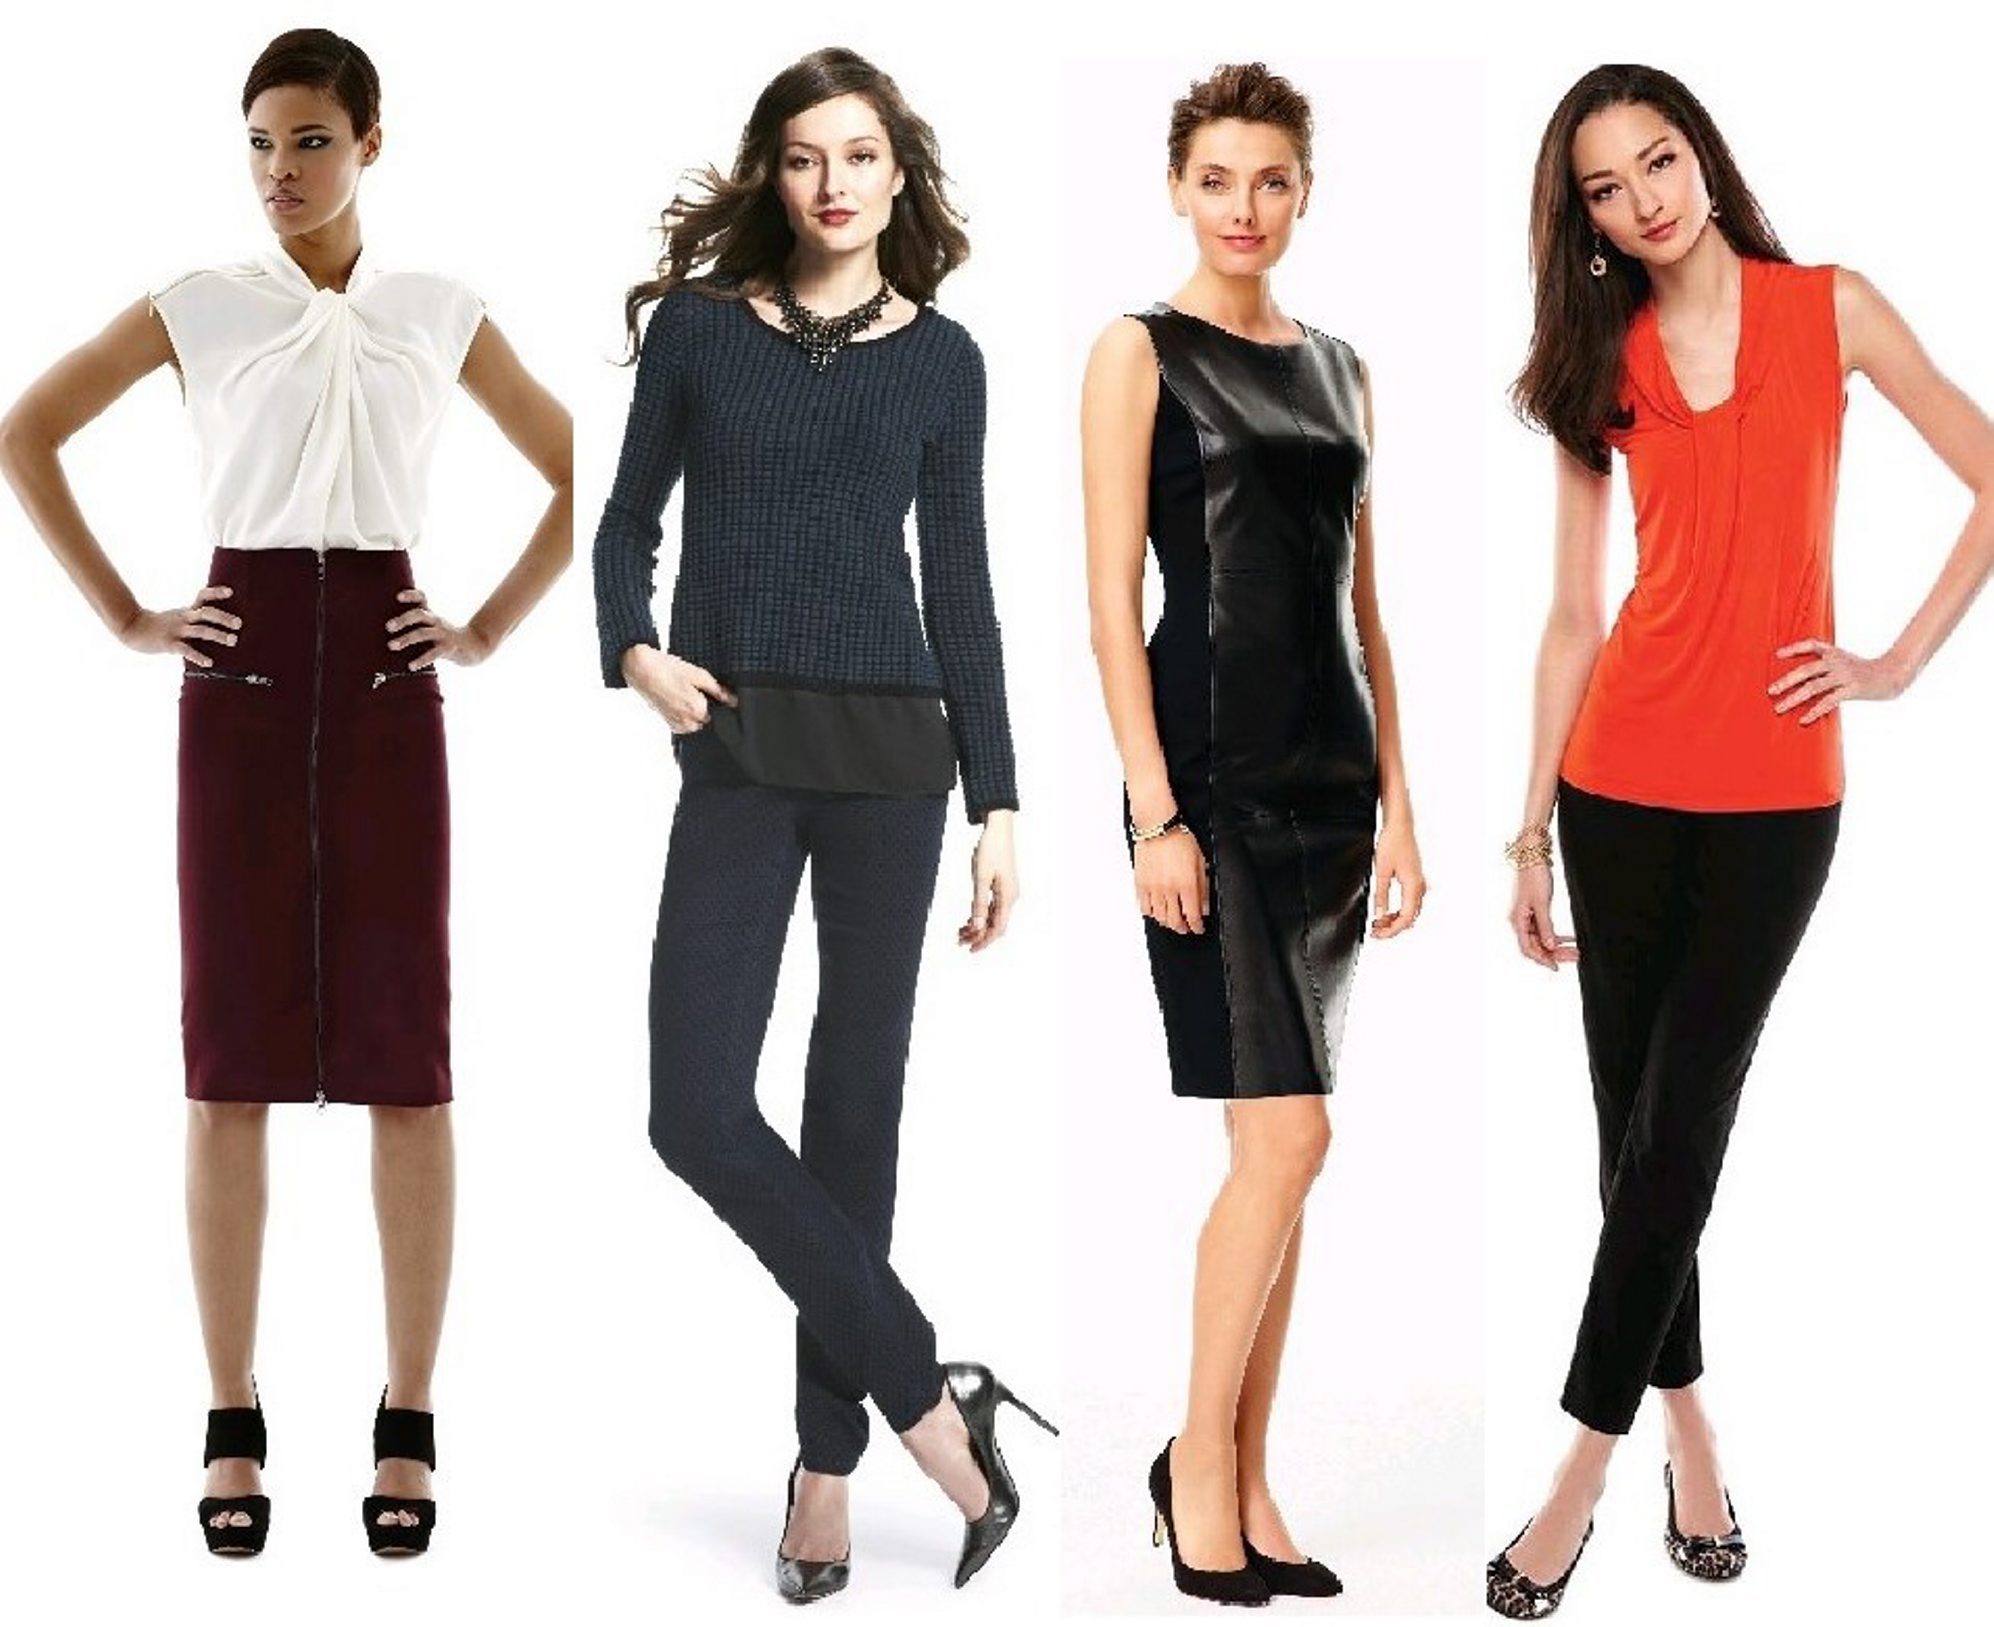 Key wardrobe pieces every woman should have in her closet include, from left: pencil skirt (Worthington at J.C. Penney); a pair of jeans (Style & Co. at Macy's); little black dress (Talbots); and black dress pants (Dana Buchman at Kohl's.)